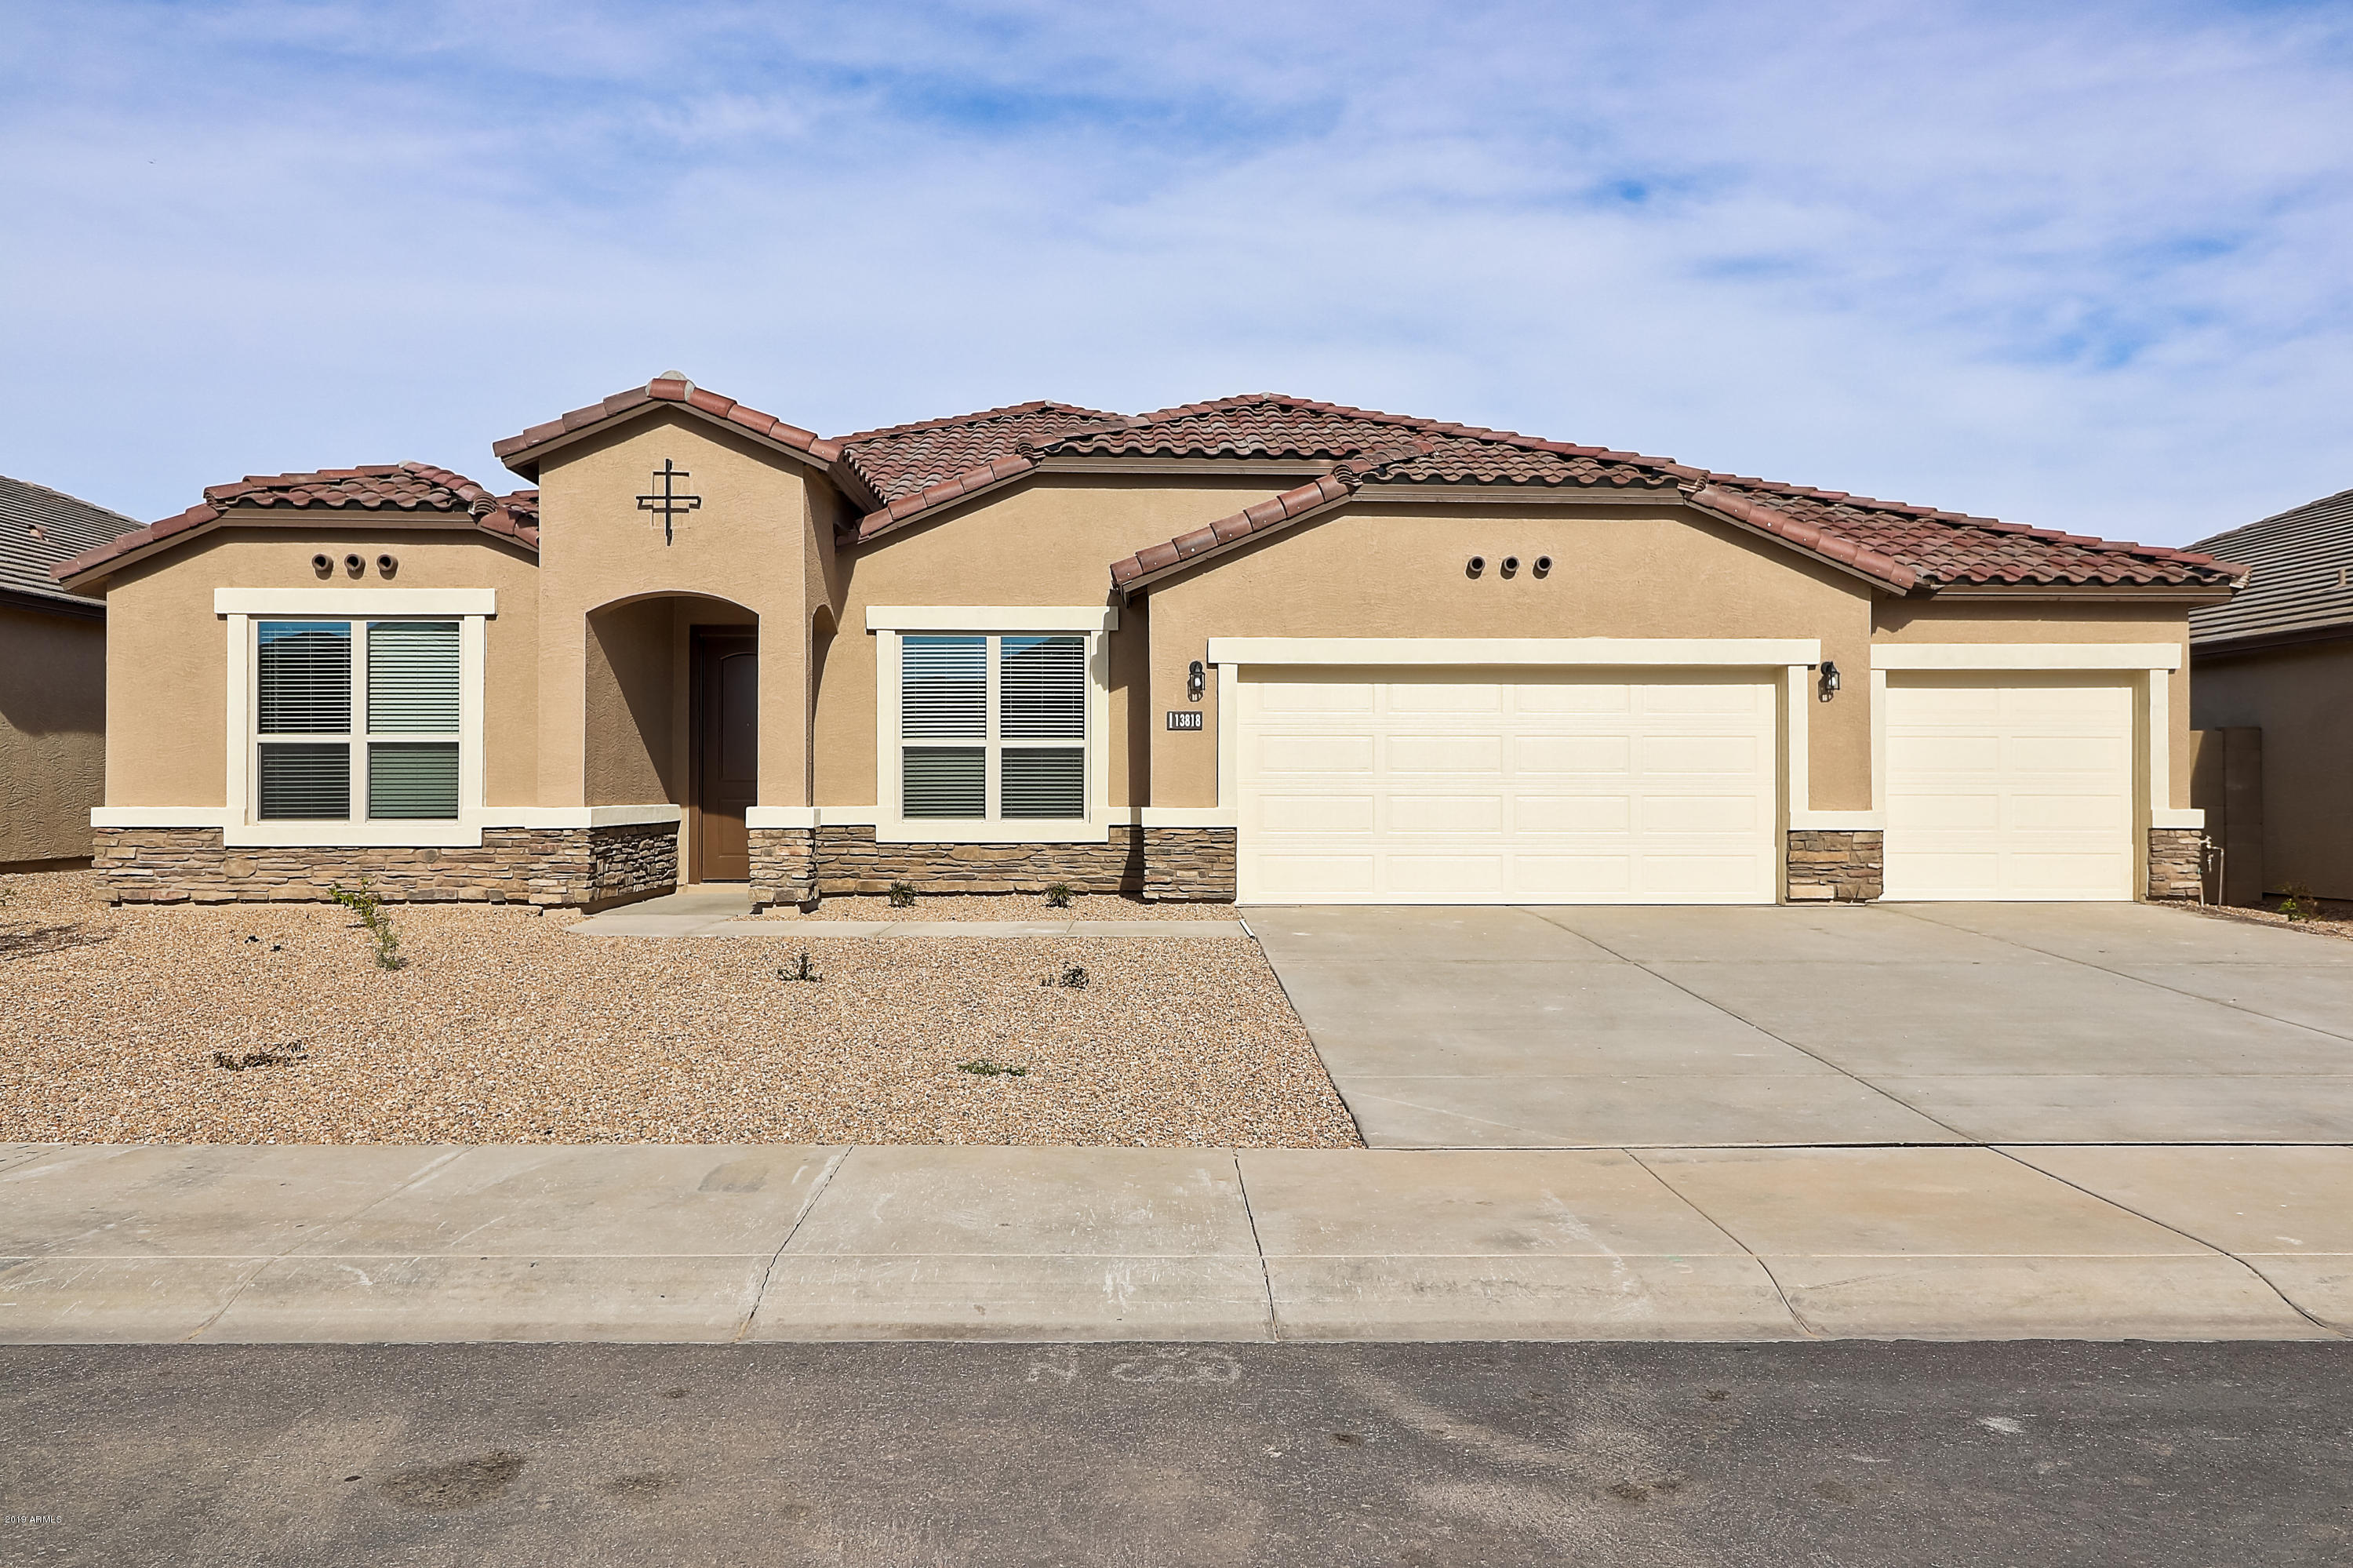 26014 N 138TH Lane, Peoria in Maricopa County, AZ 85383 Home for Sale